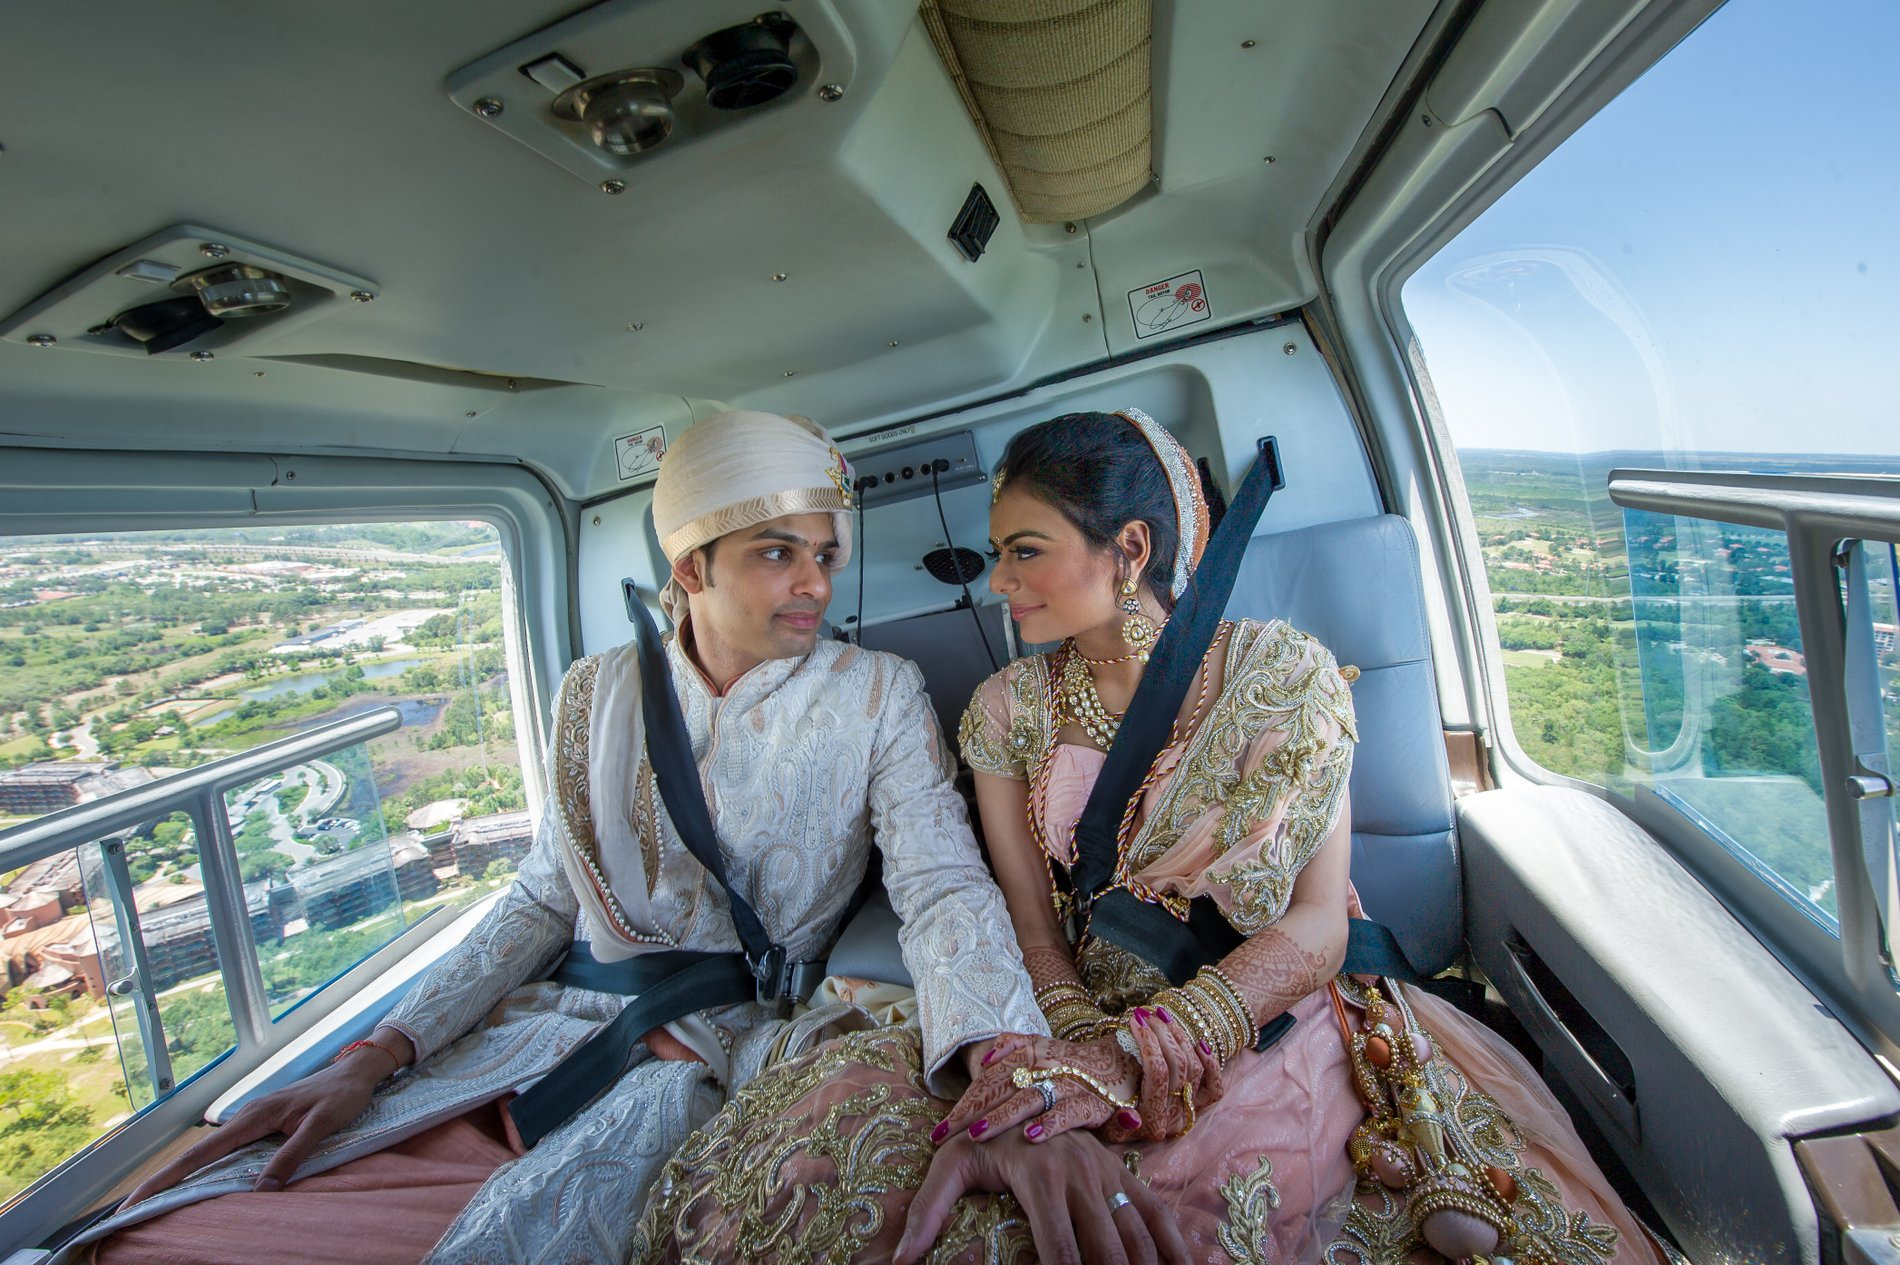 Planning an Indian Wedding – What makes an Indian Wedding different?, Miami Wedding Photographers | Häring Photography, Indian Wedding Photographer in Florida, Best Muslim, Hindu - South East Asian Wedding Photographers